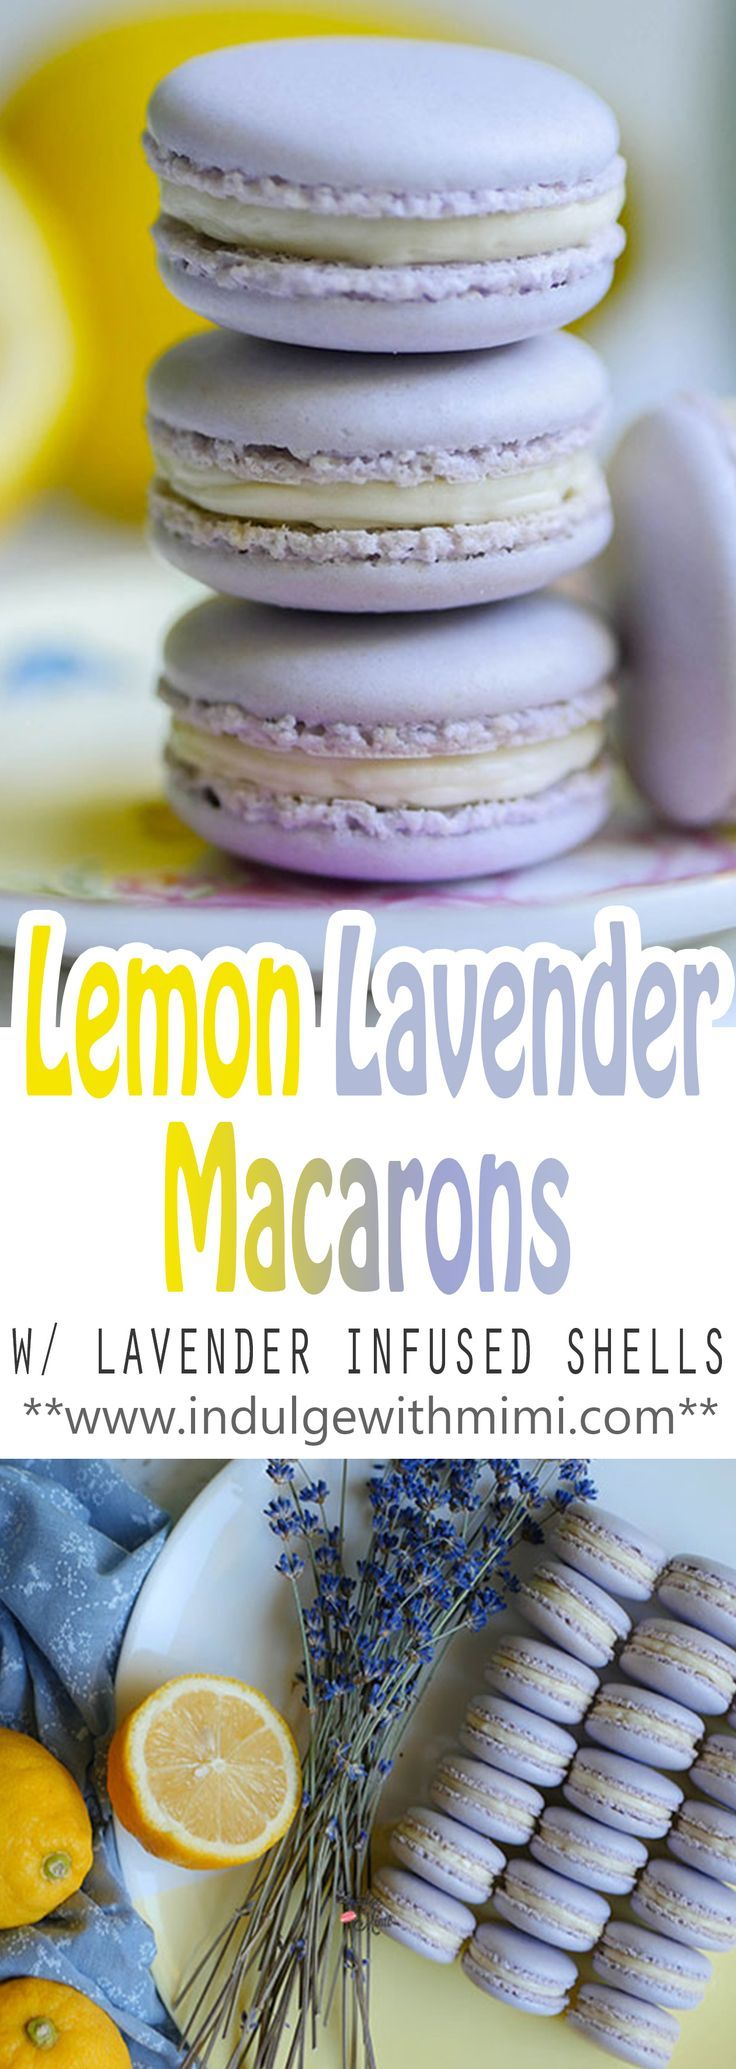 Lemon Lavender Macaron Recipe with lavender INFUSED shells and a sturdy macaron-friendly lemon curd.